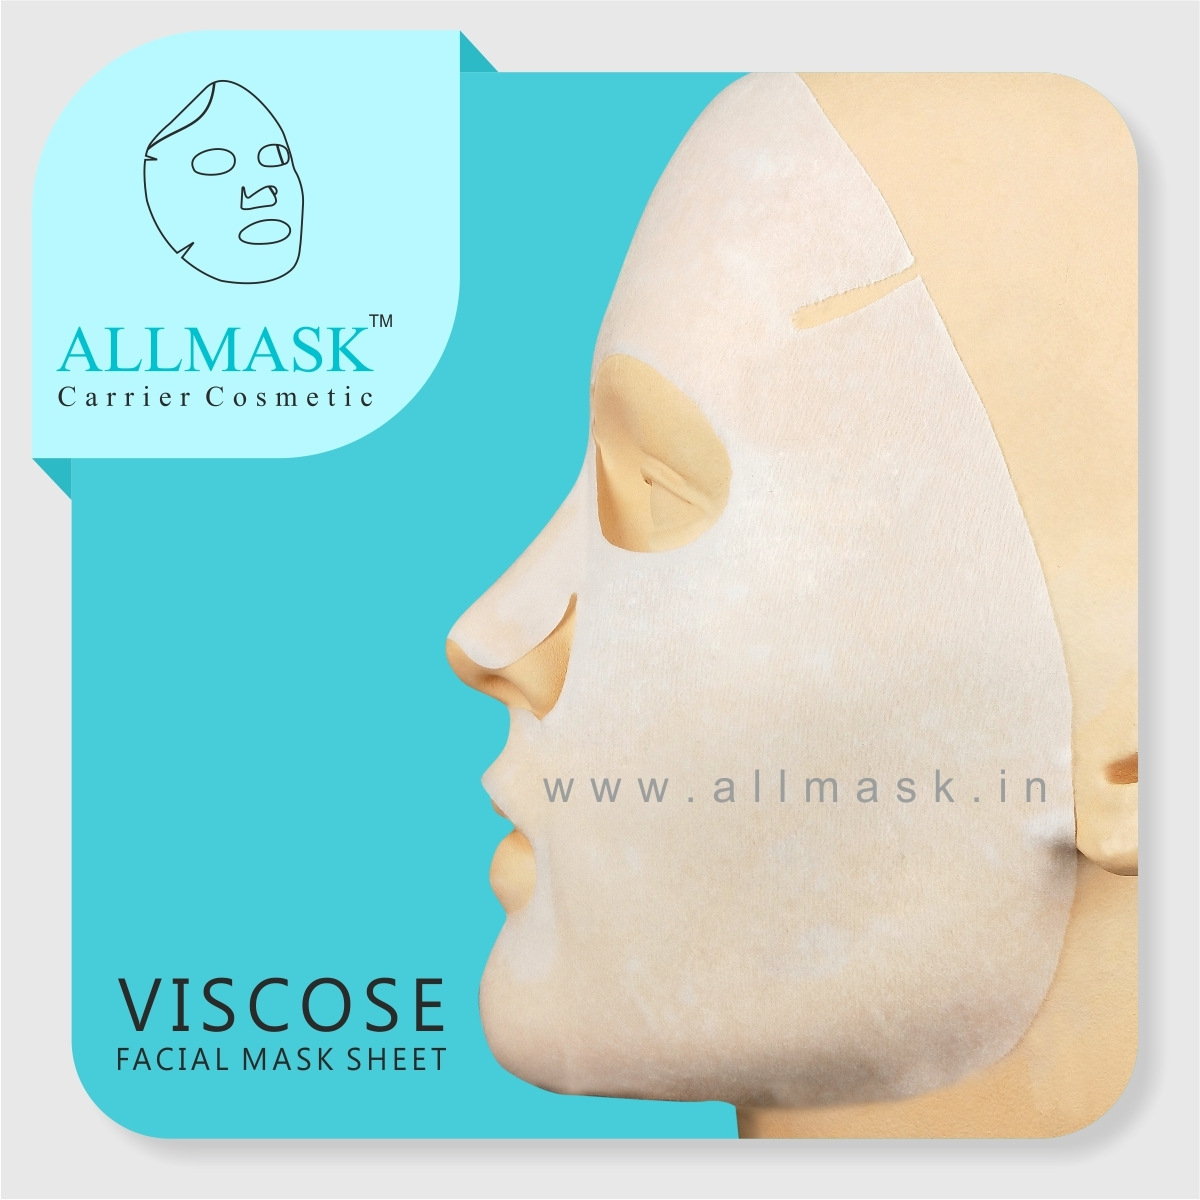 Viscose/Cellulose Facial Mask Sheet - 100% Original - ODM/OEM Customization Available